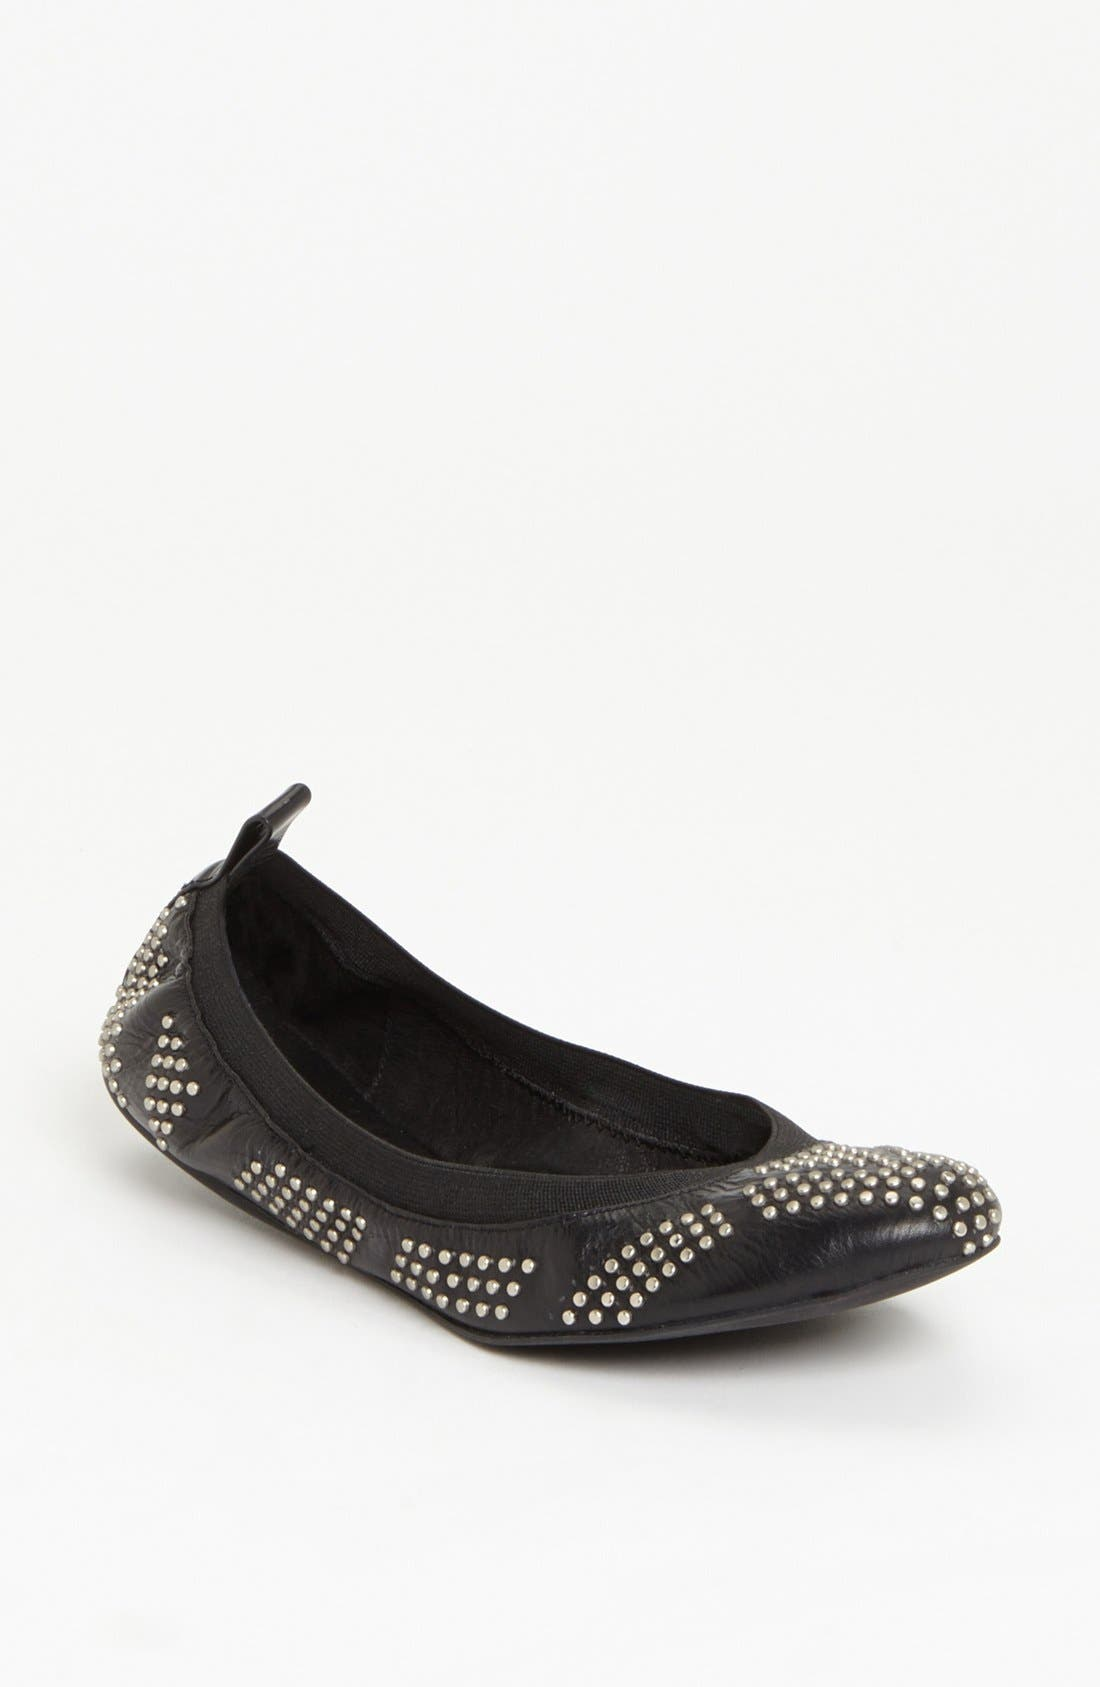 Alternate Image 1 Selected - See by Chloé 'Sharon' Ballerina Flat